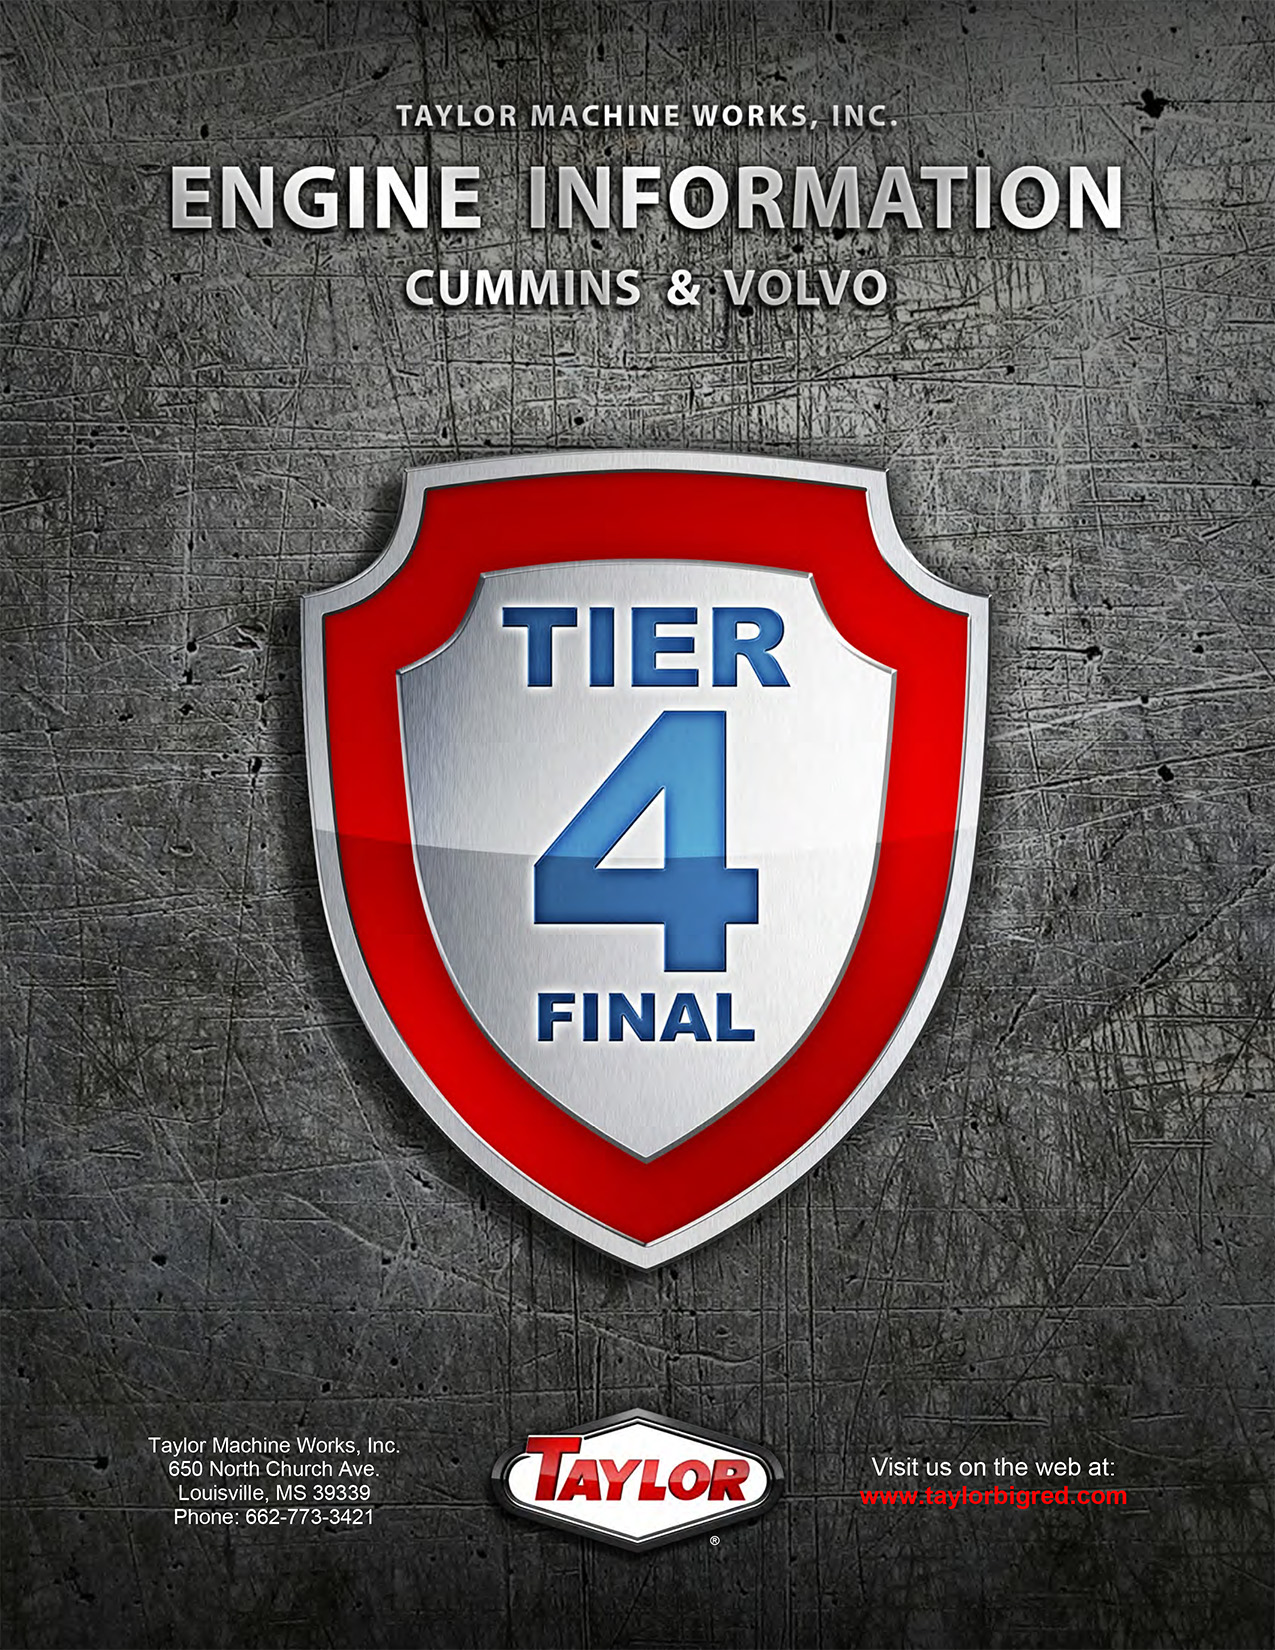 TIER4 FINAL ENGINES